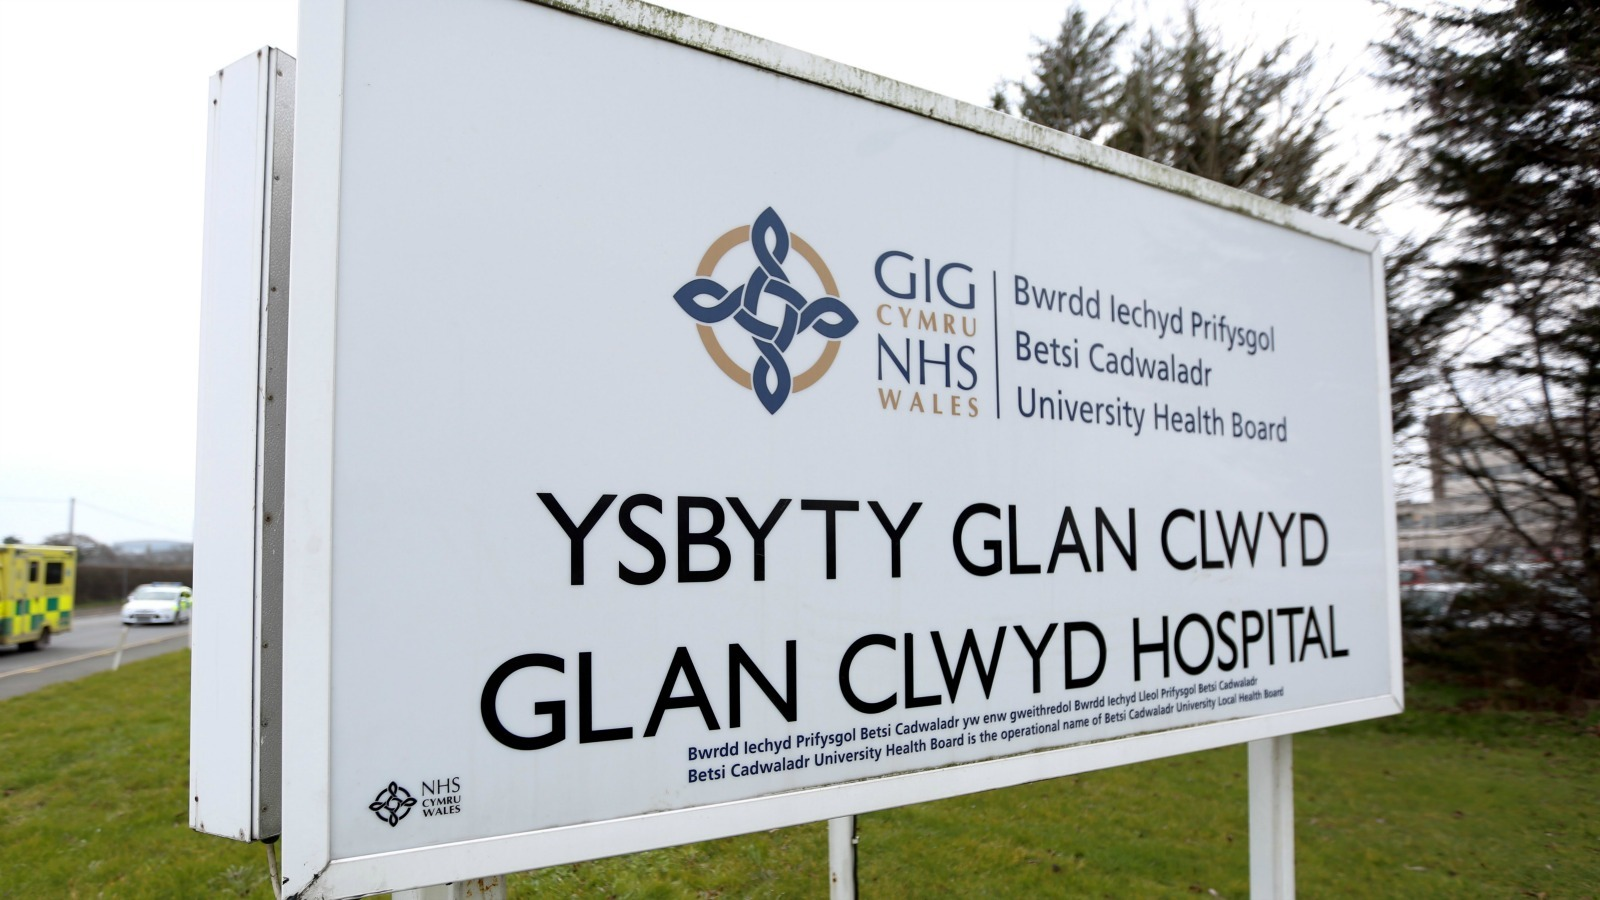 Concerns have been raised by Treasure Chest Breast Cancer Support Group that Glan Clwyd Hospital is to change back to pathological testing